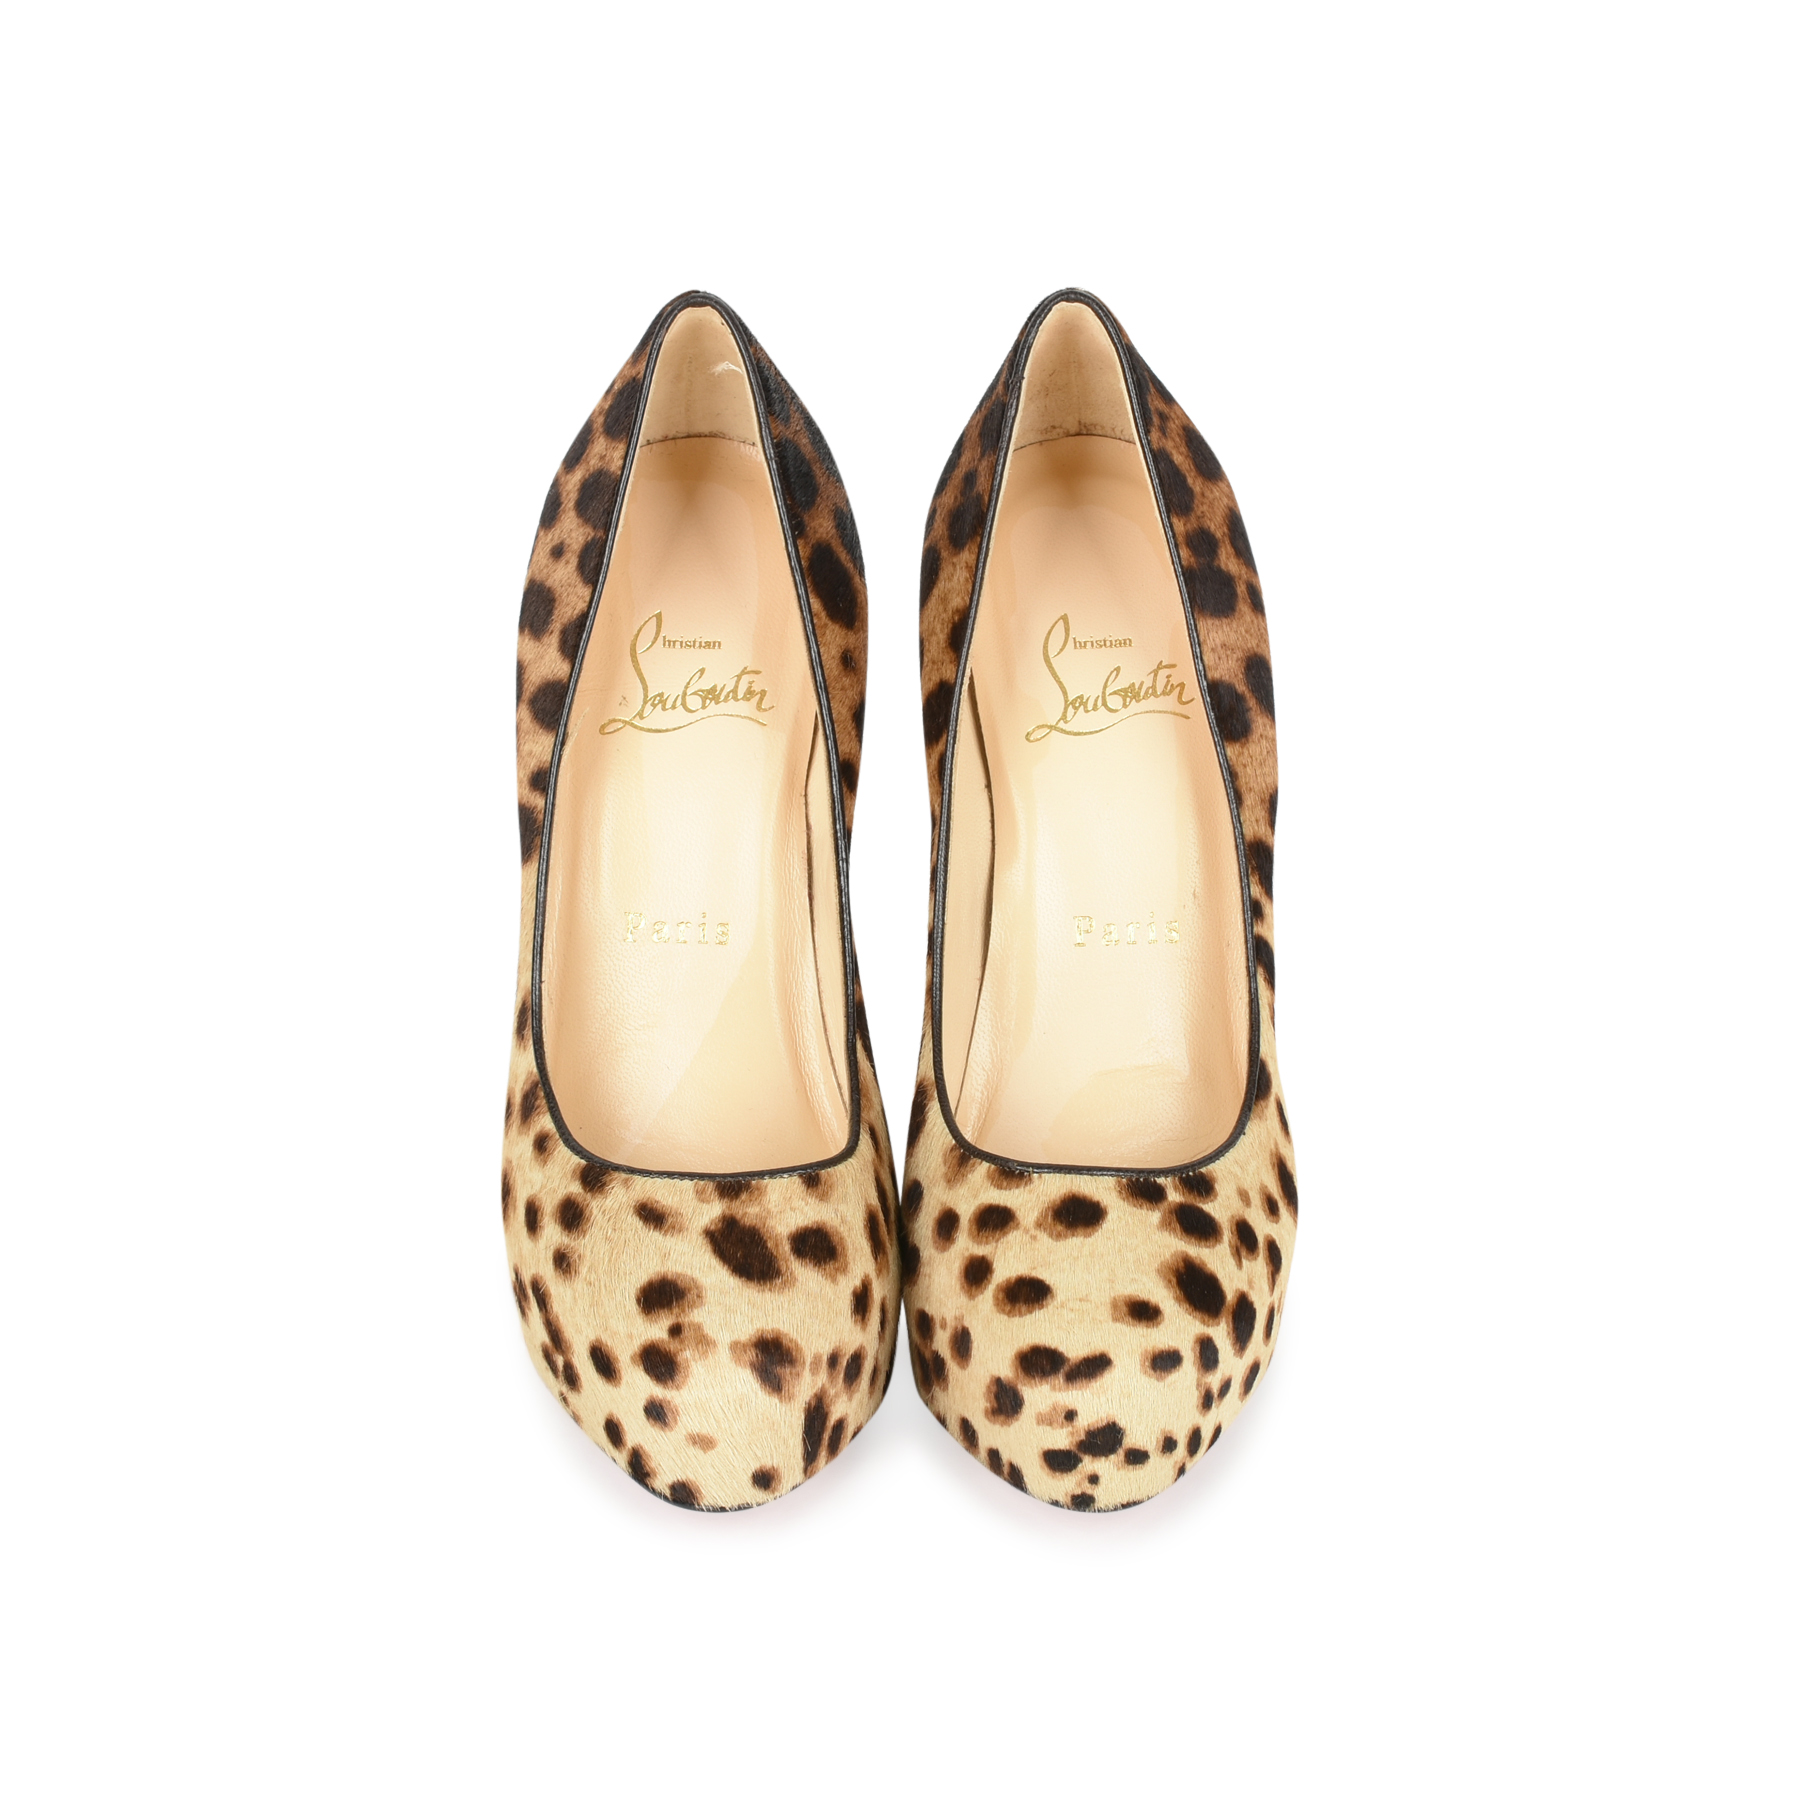 e1143ef37e Authentic Second Hand Christian Louboutin Calf Hair Leopard Print Pumps  (PSS-080-00240) - THE FIFTH COLLECTION